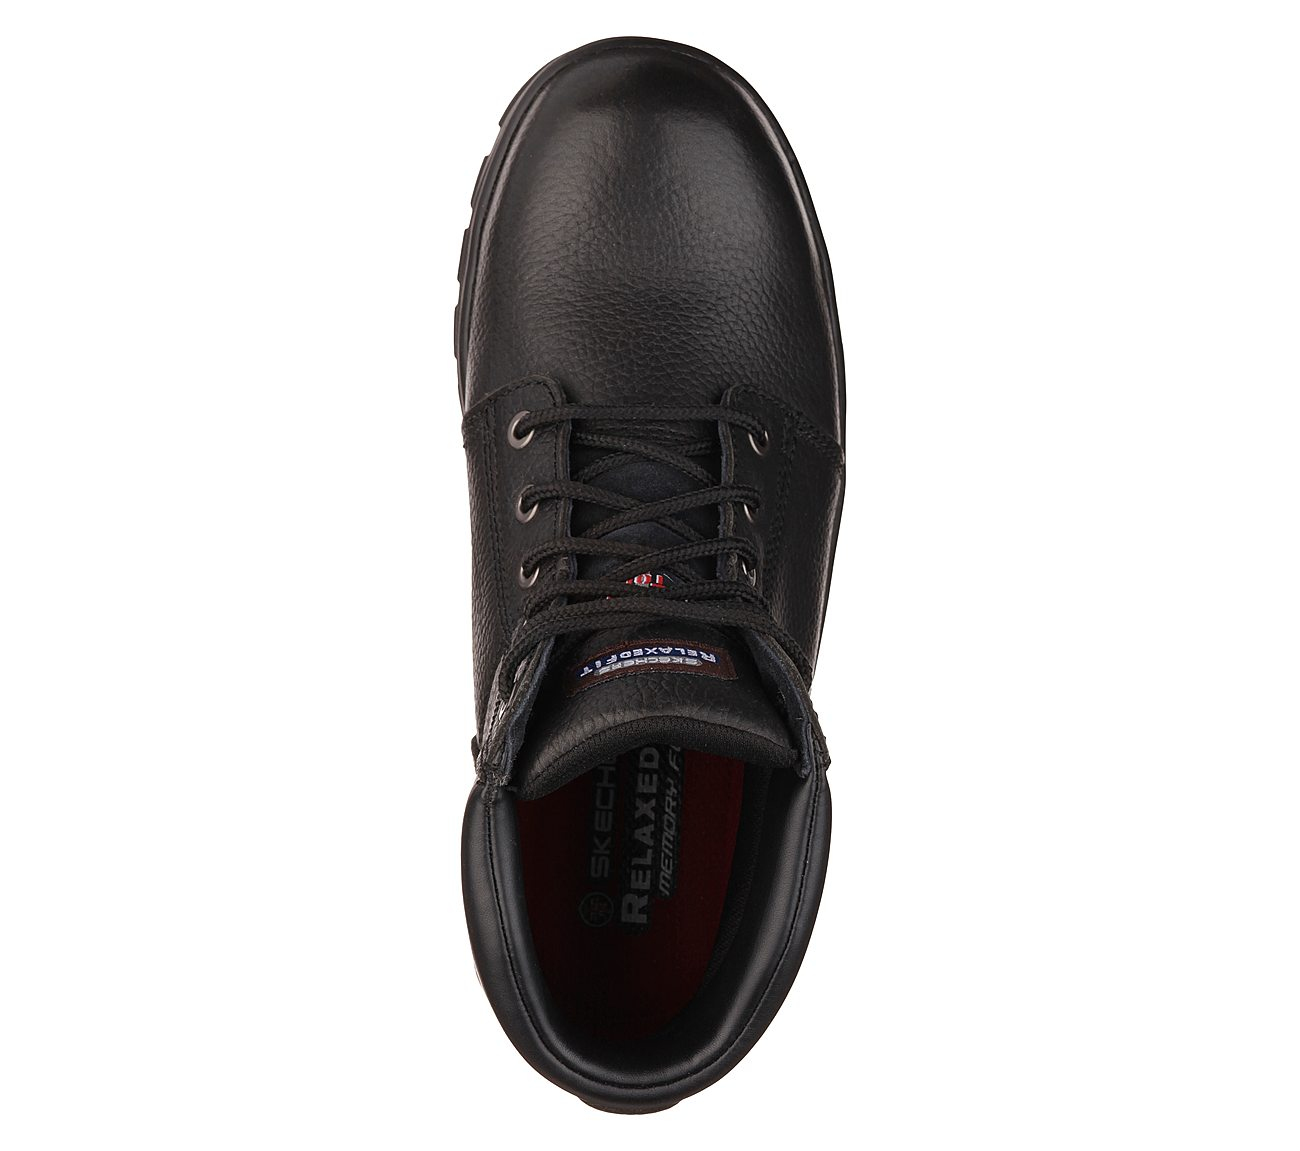 b572670a71c Buy SKECHERS Work  Relaxed Fit - Workshire ST Work Shoes only  90.00